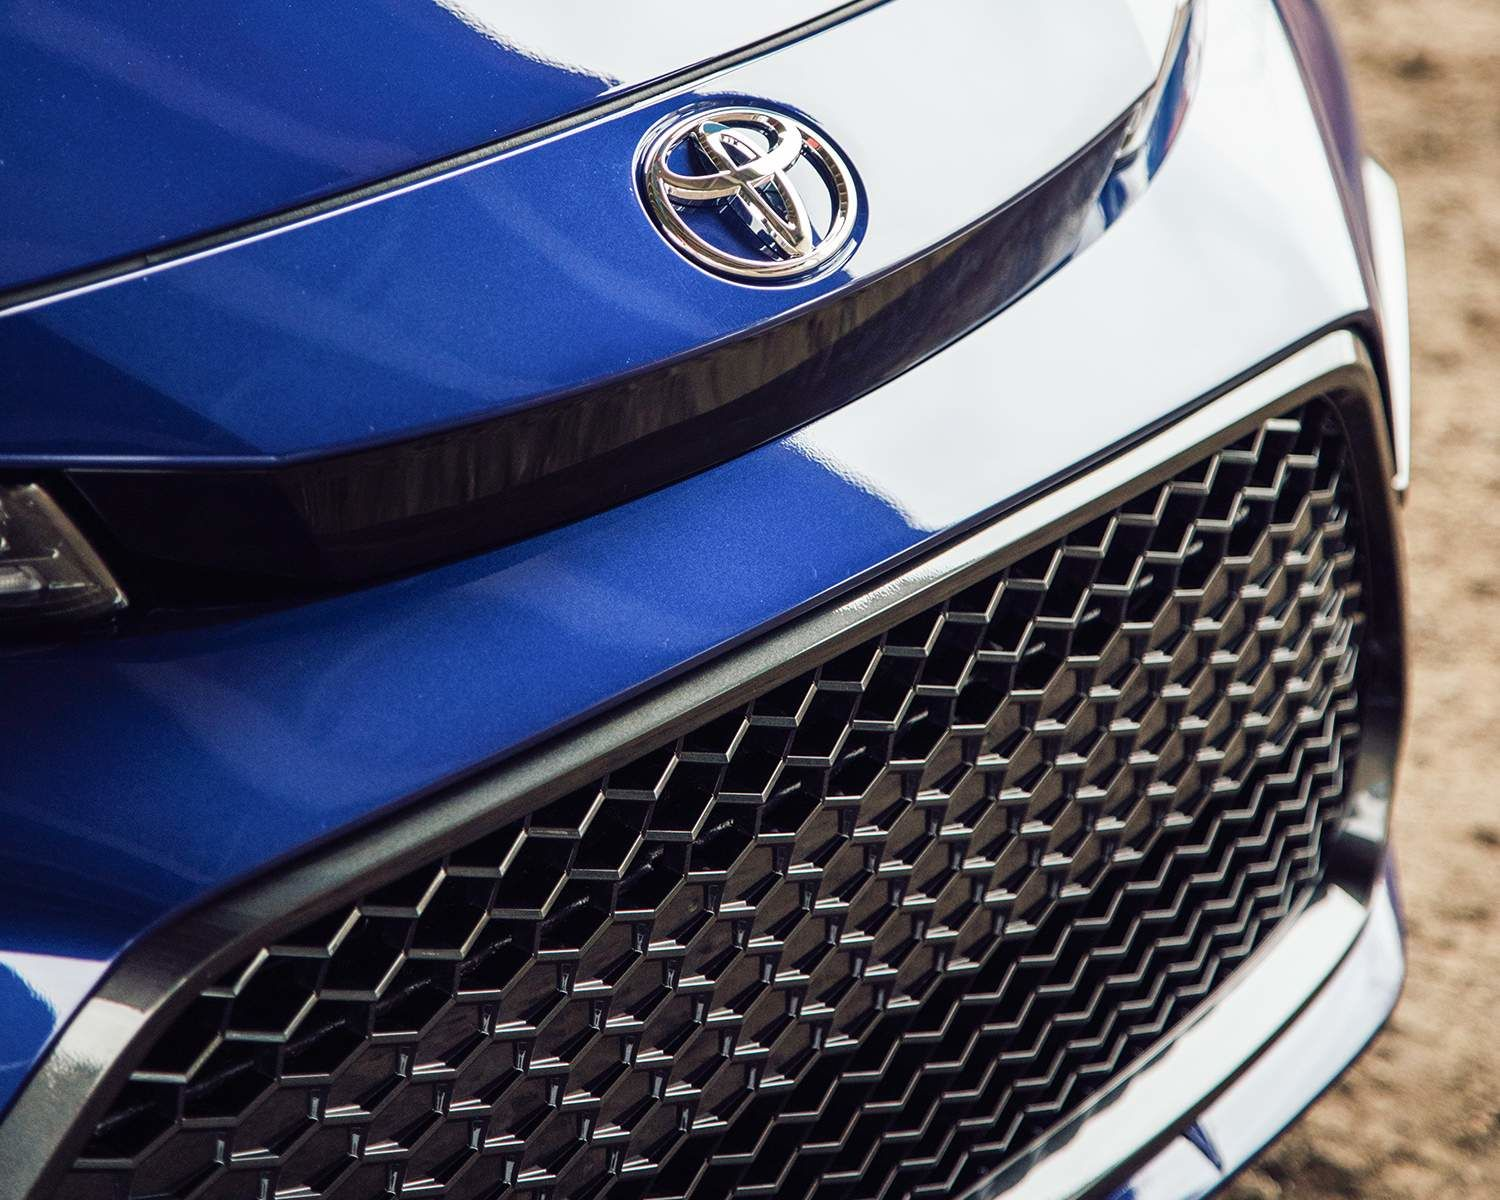 2020 Toyota Corolla SE close-up of grille upgrade